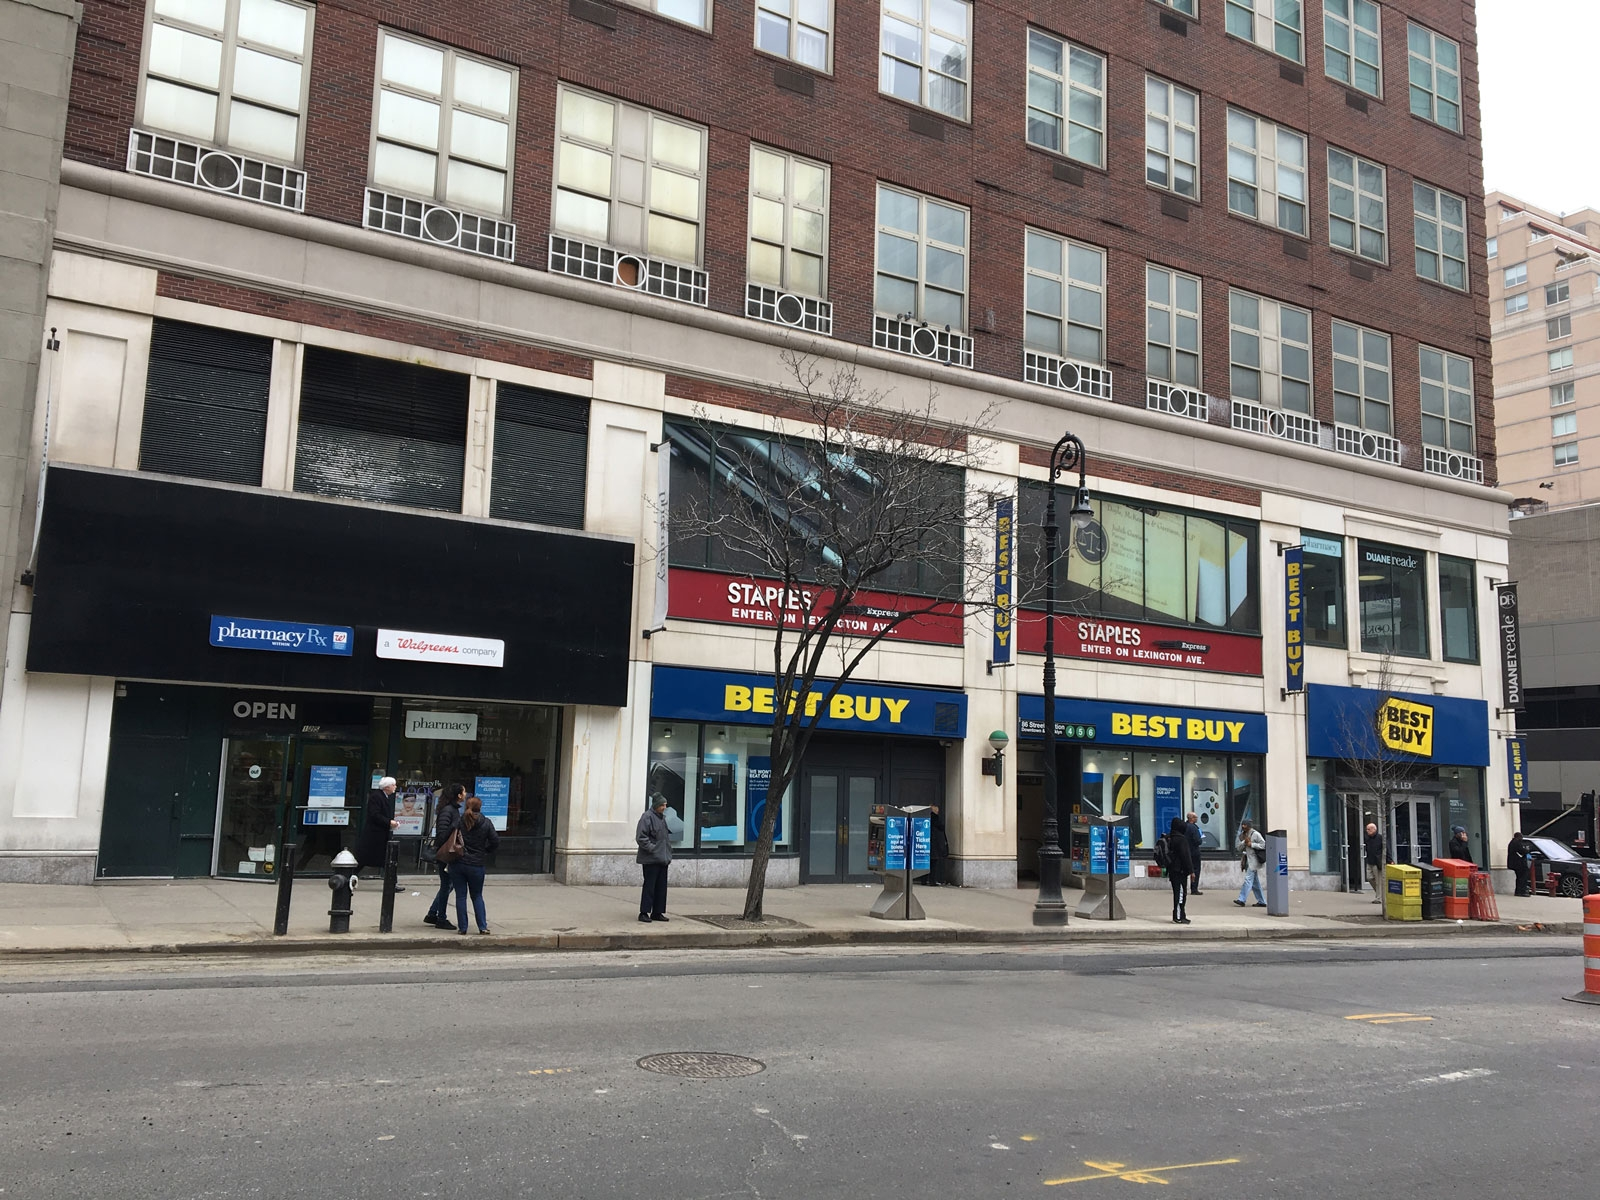 Jul 31, · These Are The Escalators At The Best Buy Store On Lexington Avenue & East 86th Street On The Upper East Side In Manhattan New York City. These Escalators Are